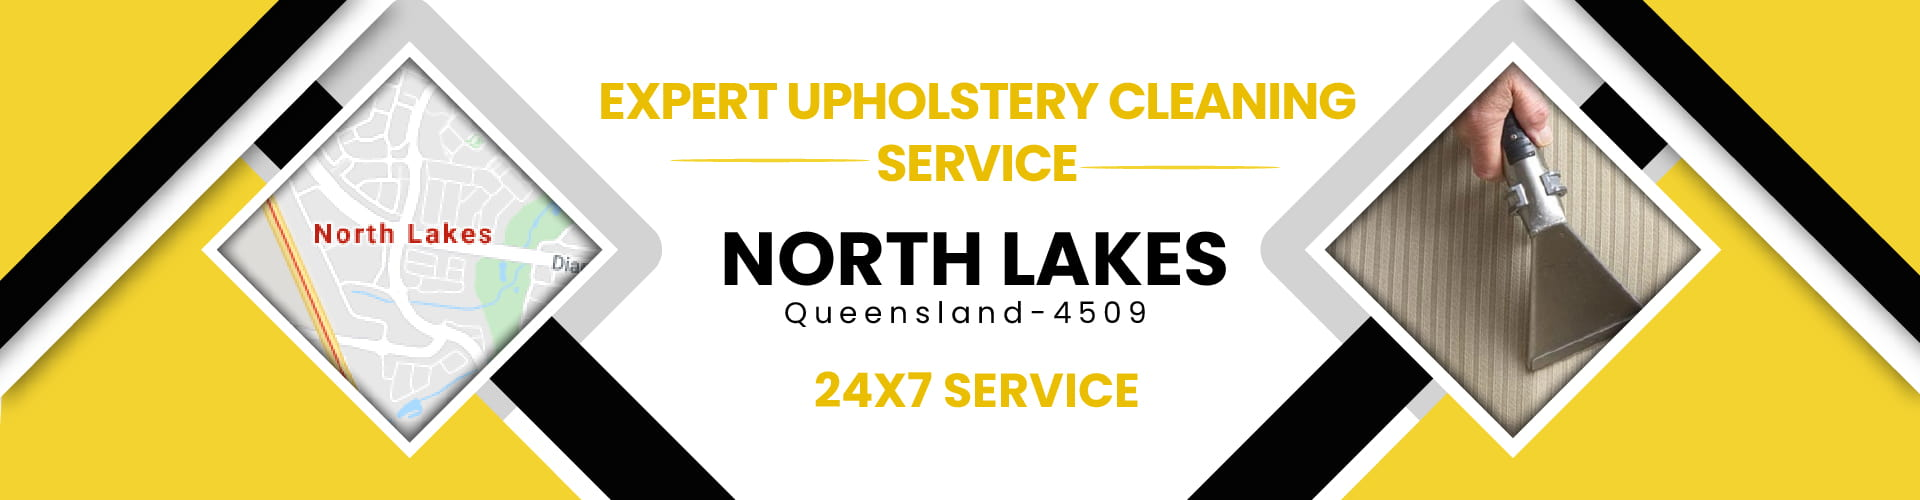 Upholstery Cleaning North Lakes